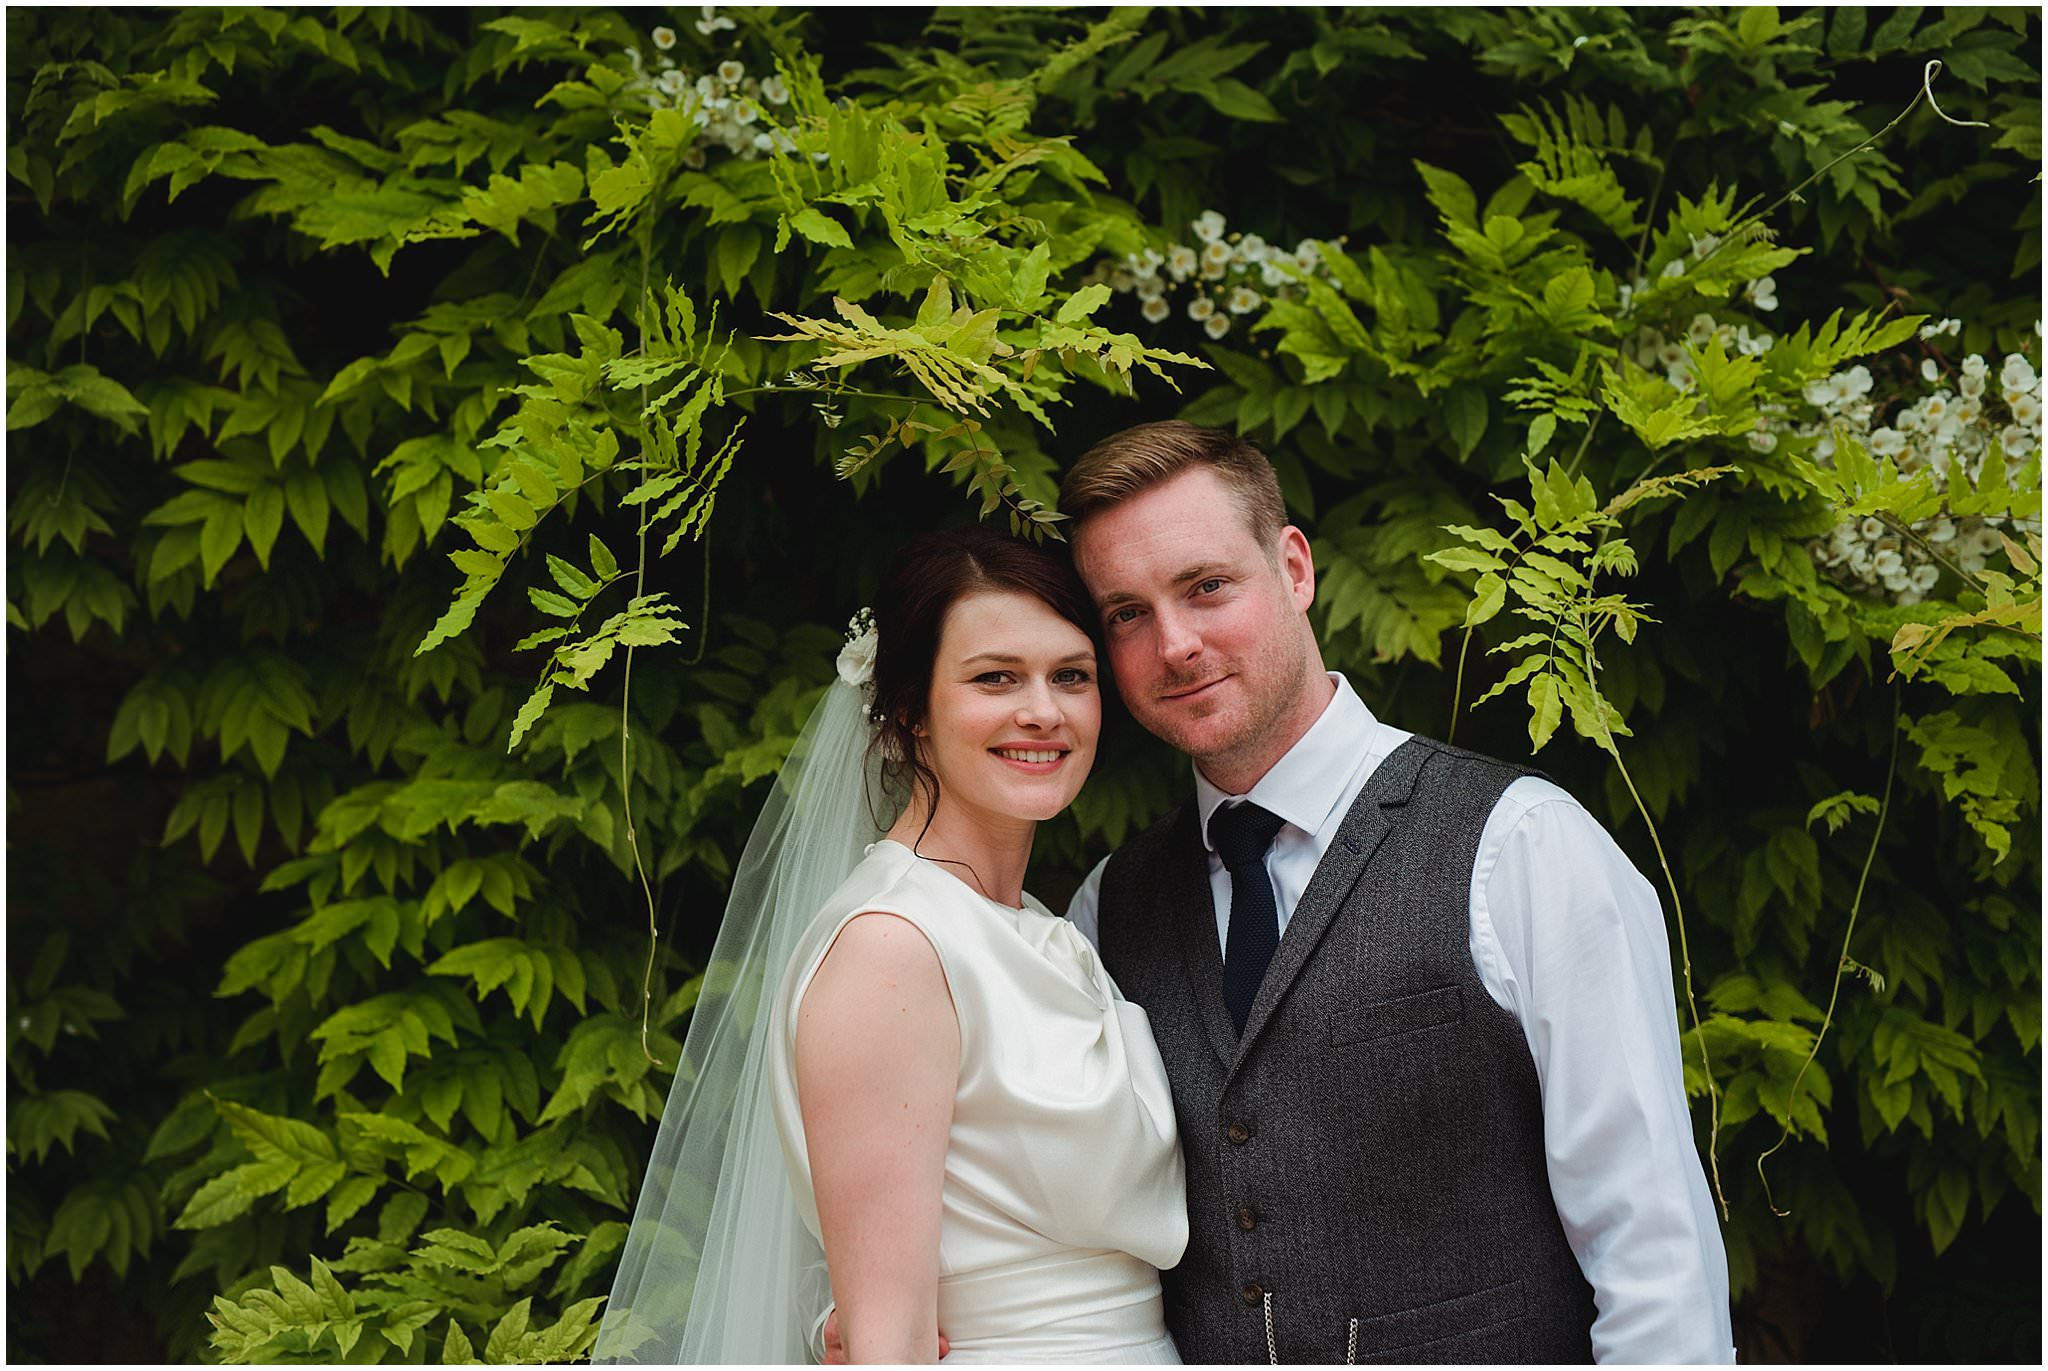 fay & tim wedding at ashley wood farm_0479